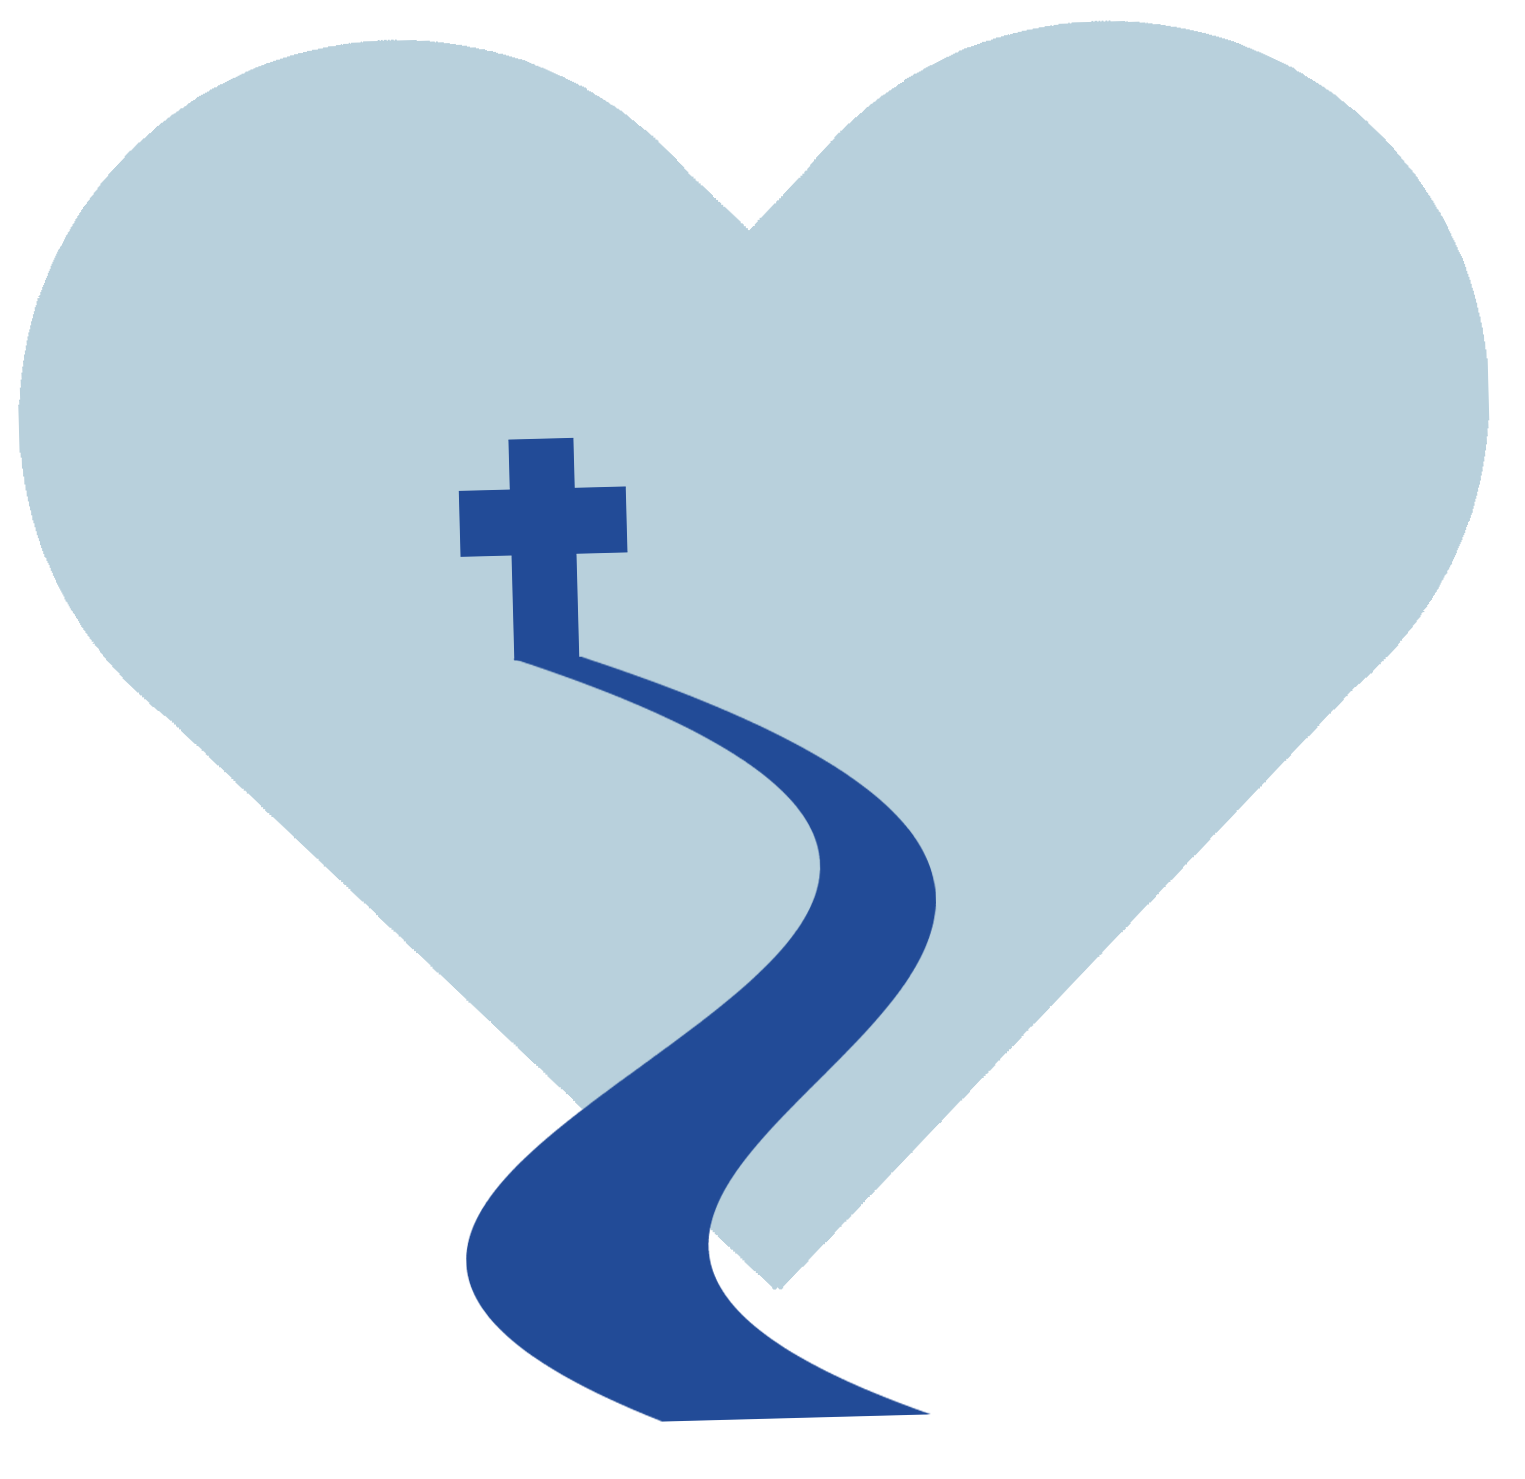 A heart with a cross in the middle and a path leading to it